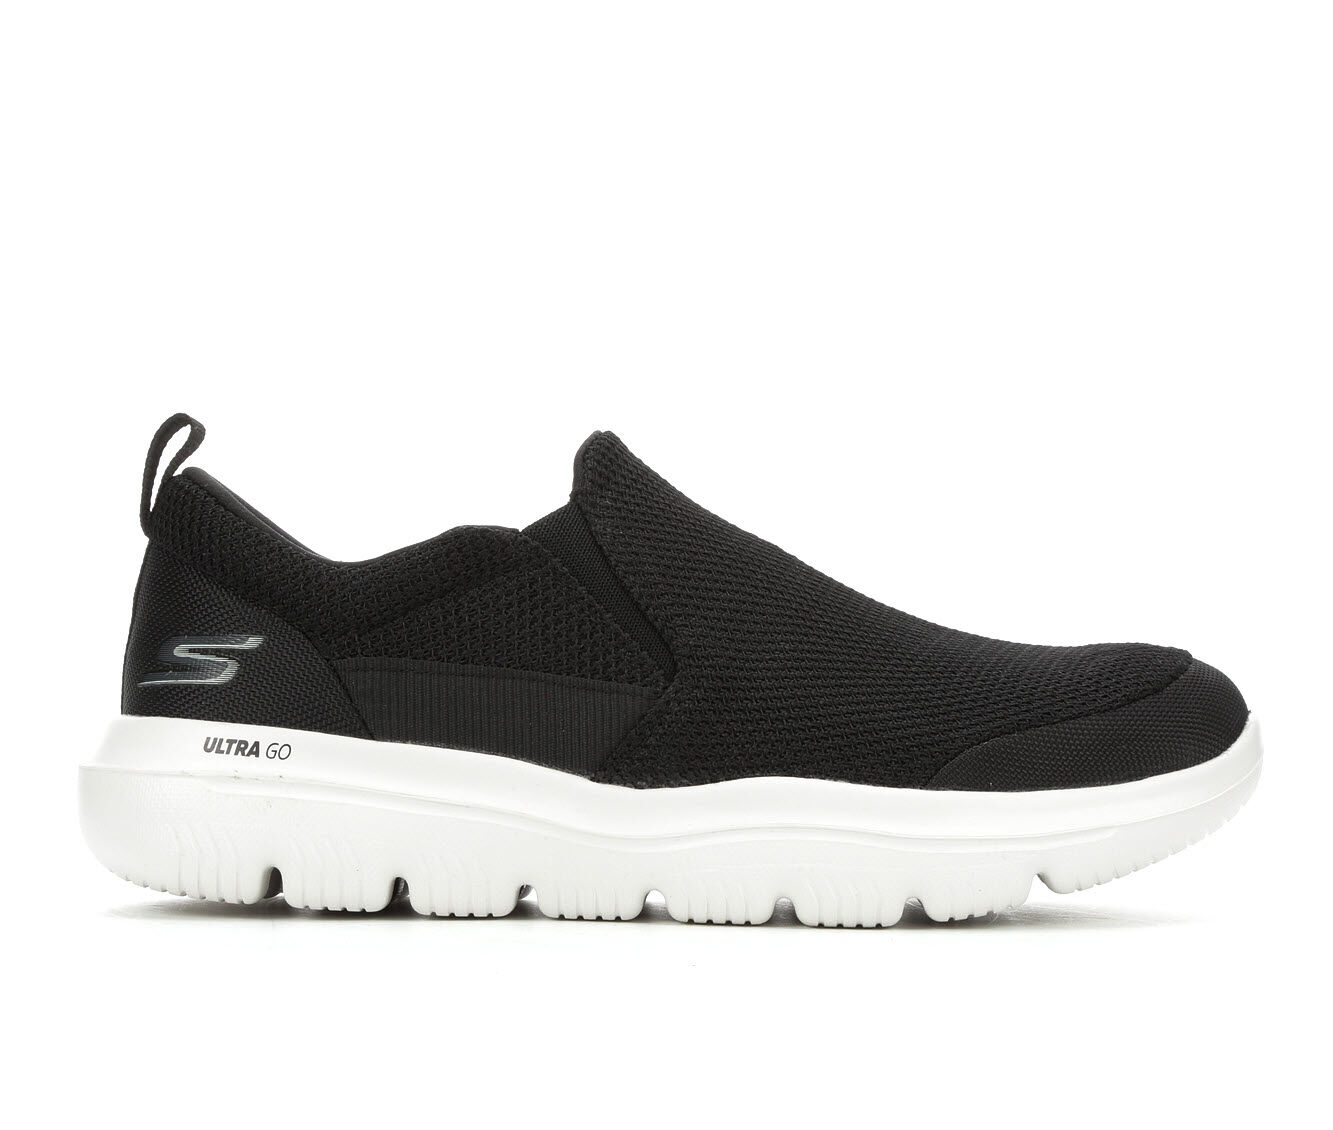 buy newest Men's Skechers Go Evolution Ultra Casual Shoes Black/White